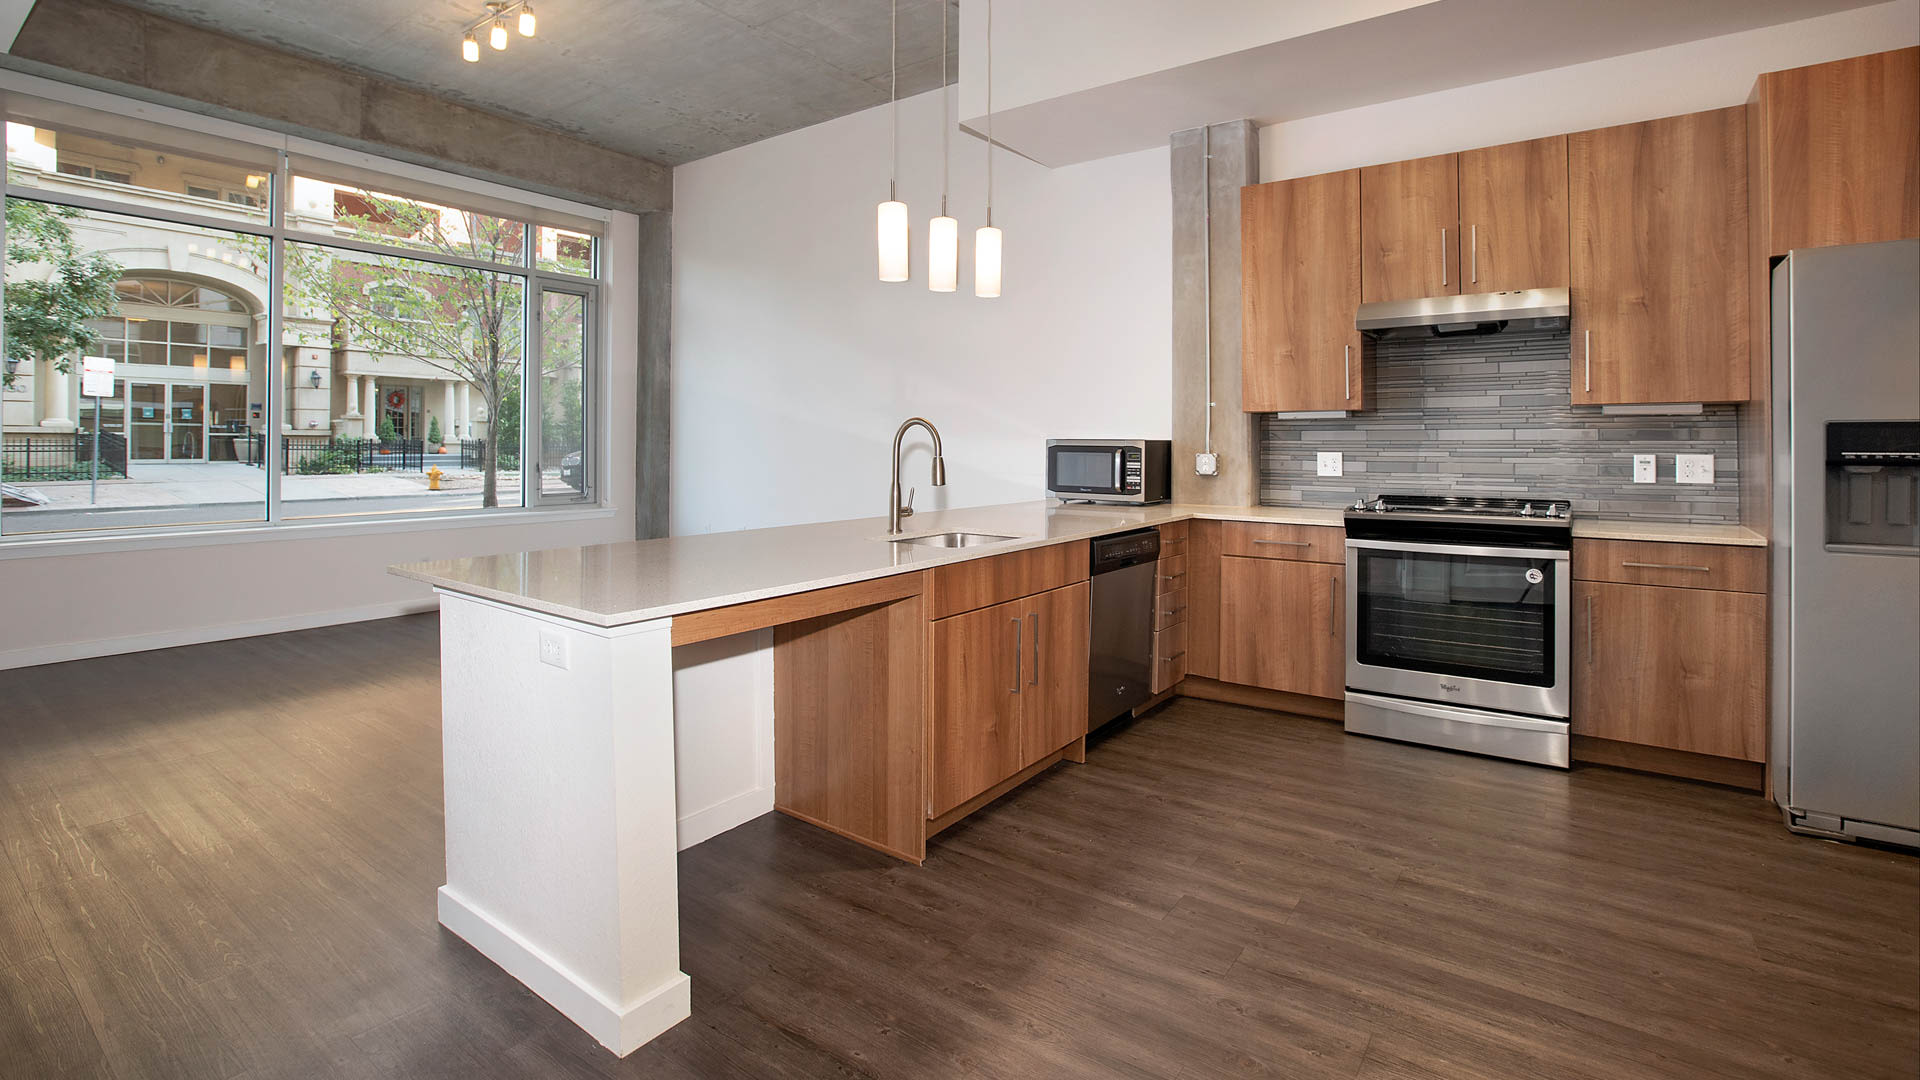 Radius Uptown Apartments - Kitchen and Living Area